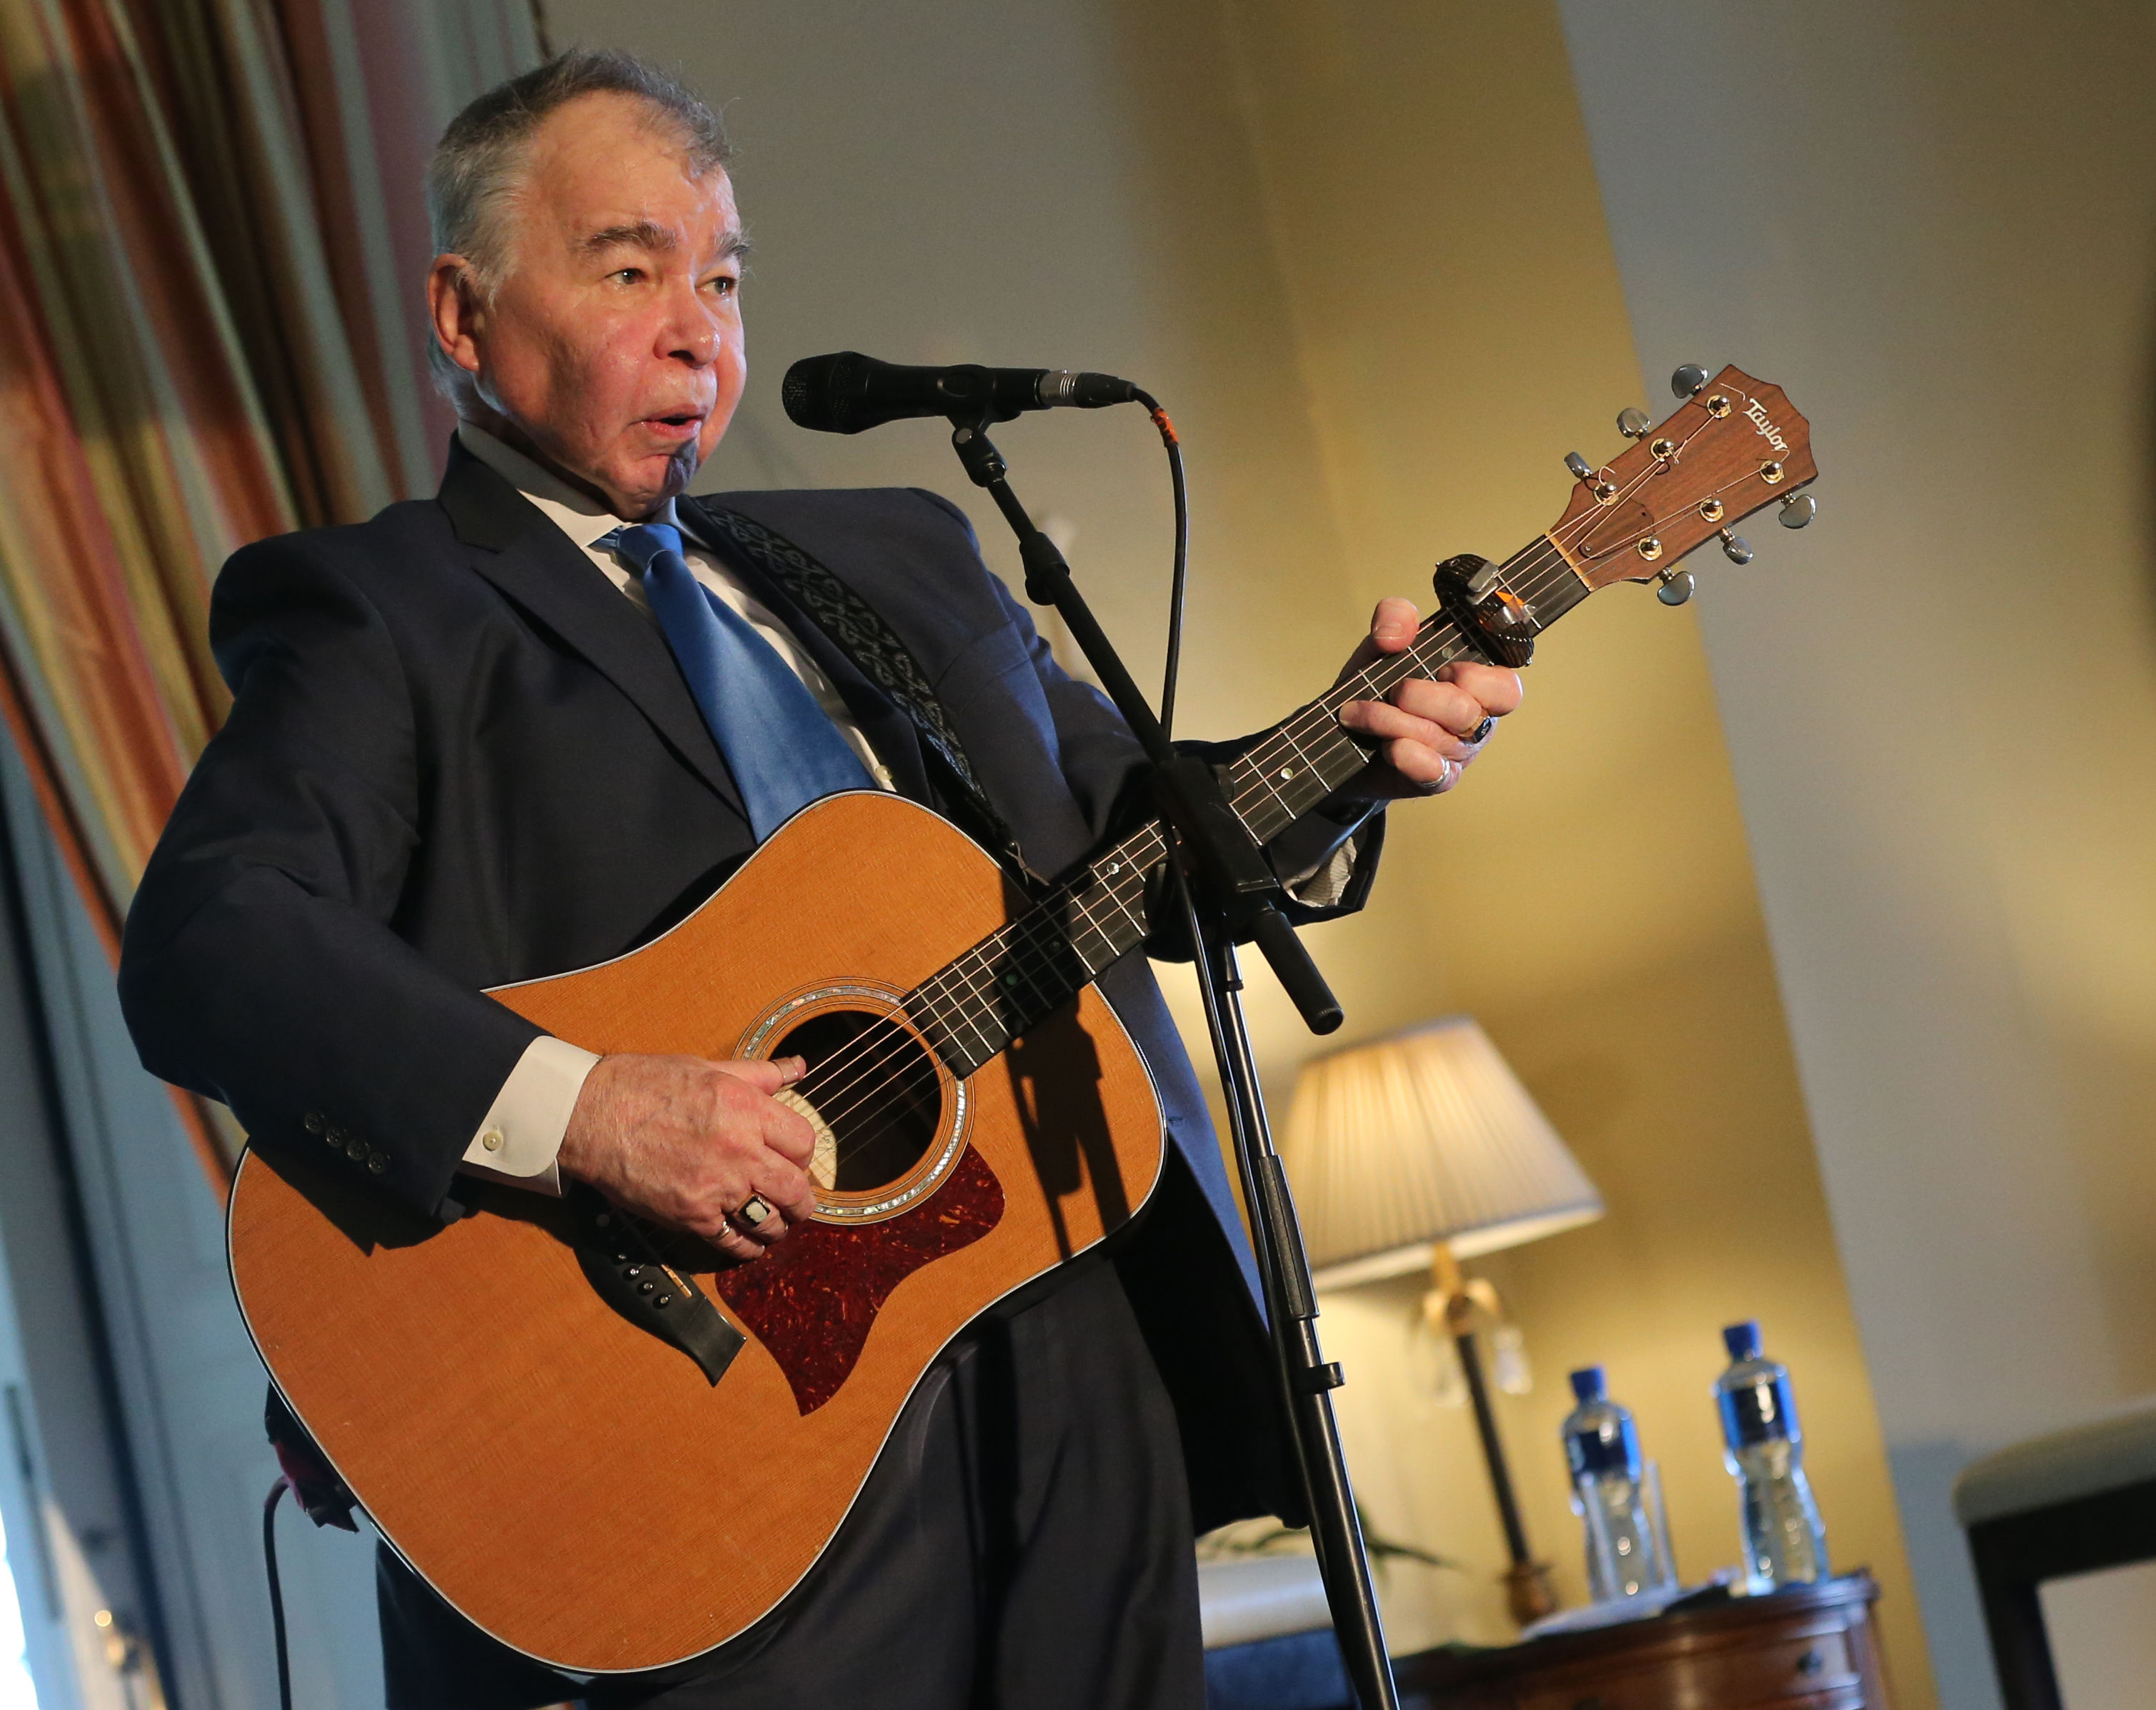 File photo dated 17/8/2015 of American country/folk singer-songwriter John Prine who has died aged 73 due to complications from the coronavirus. He is pictured participating in the Creative Minds Event, hosted by US Ambassador to Ireland Kevin O'Malley at his residence in Dublin.